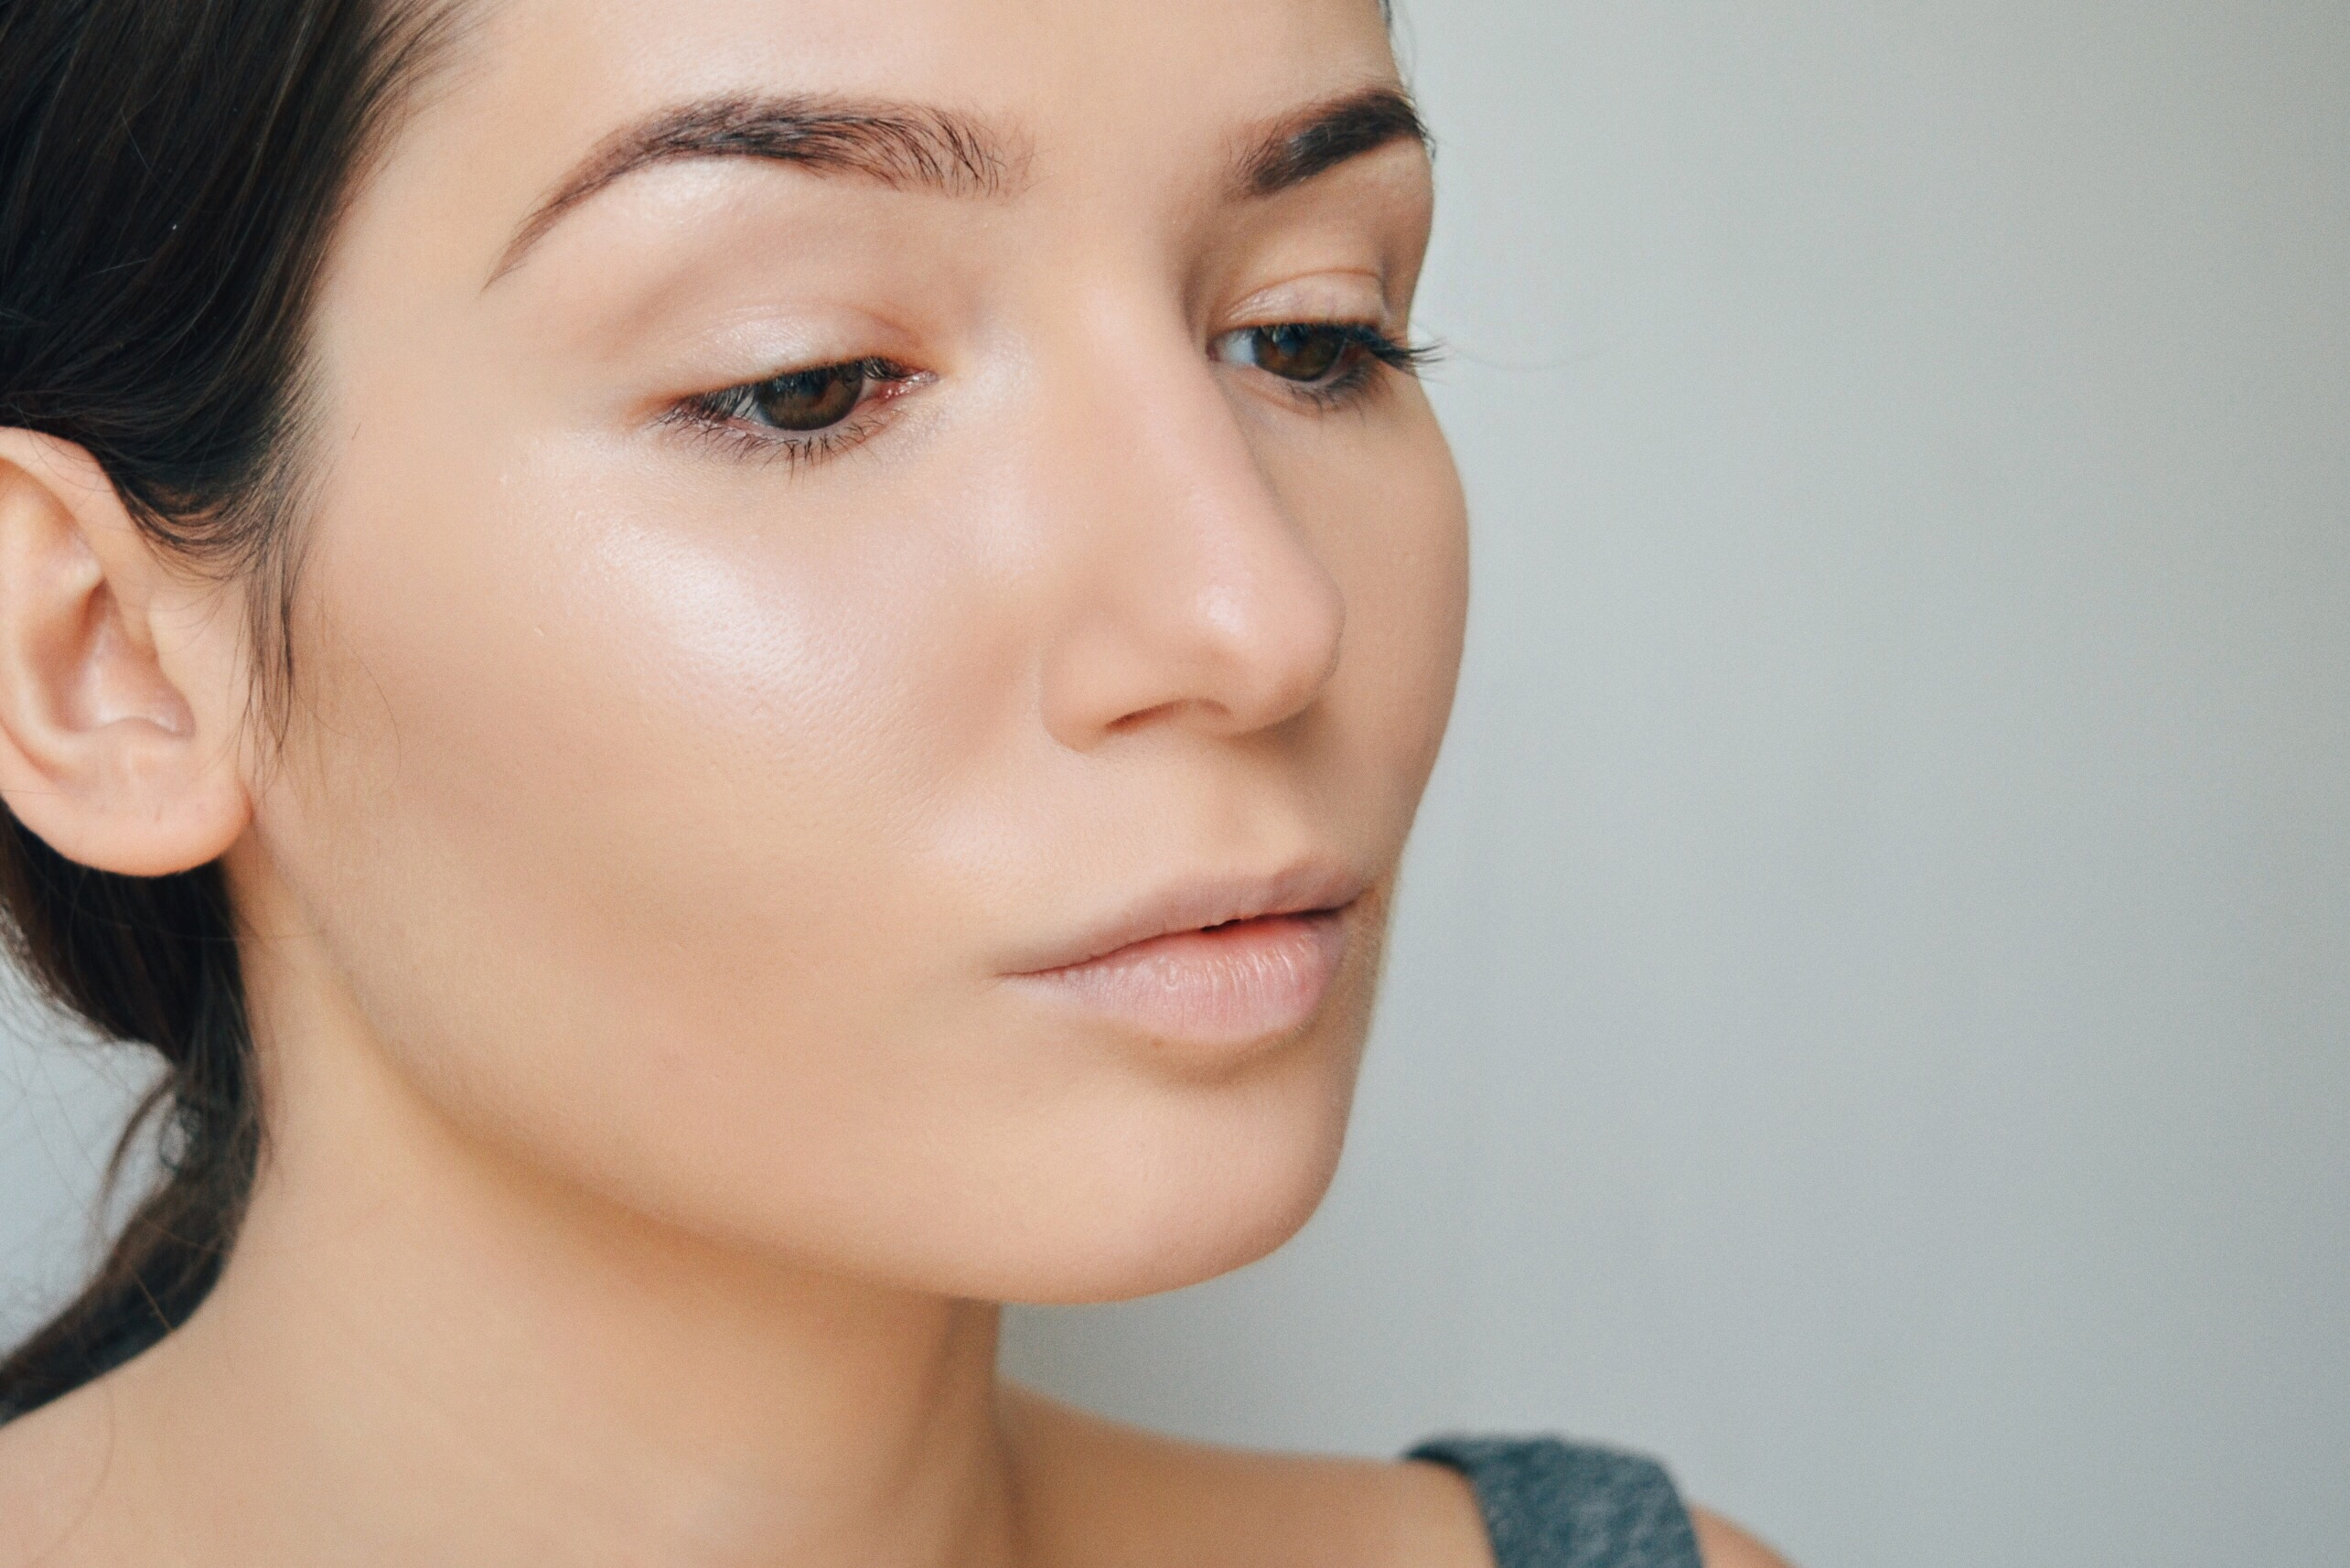 6. The result after applying Illuminating Powder with Real Techniques 'Buffing Brush'.